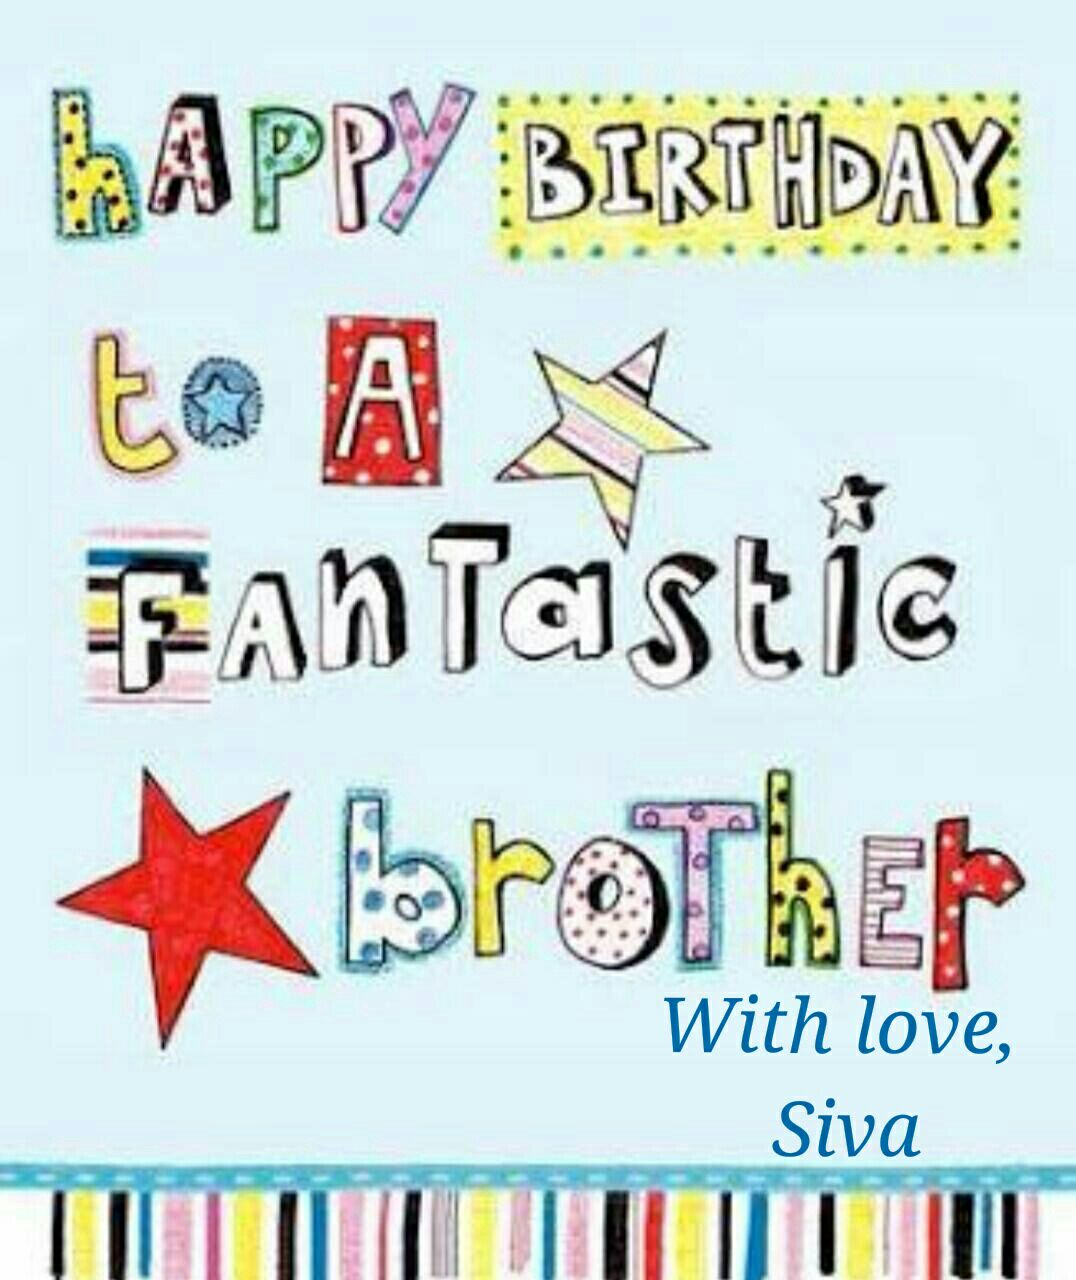 Brothers clipart happy birthday, Brothers happy birthday